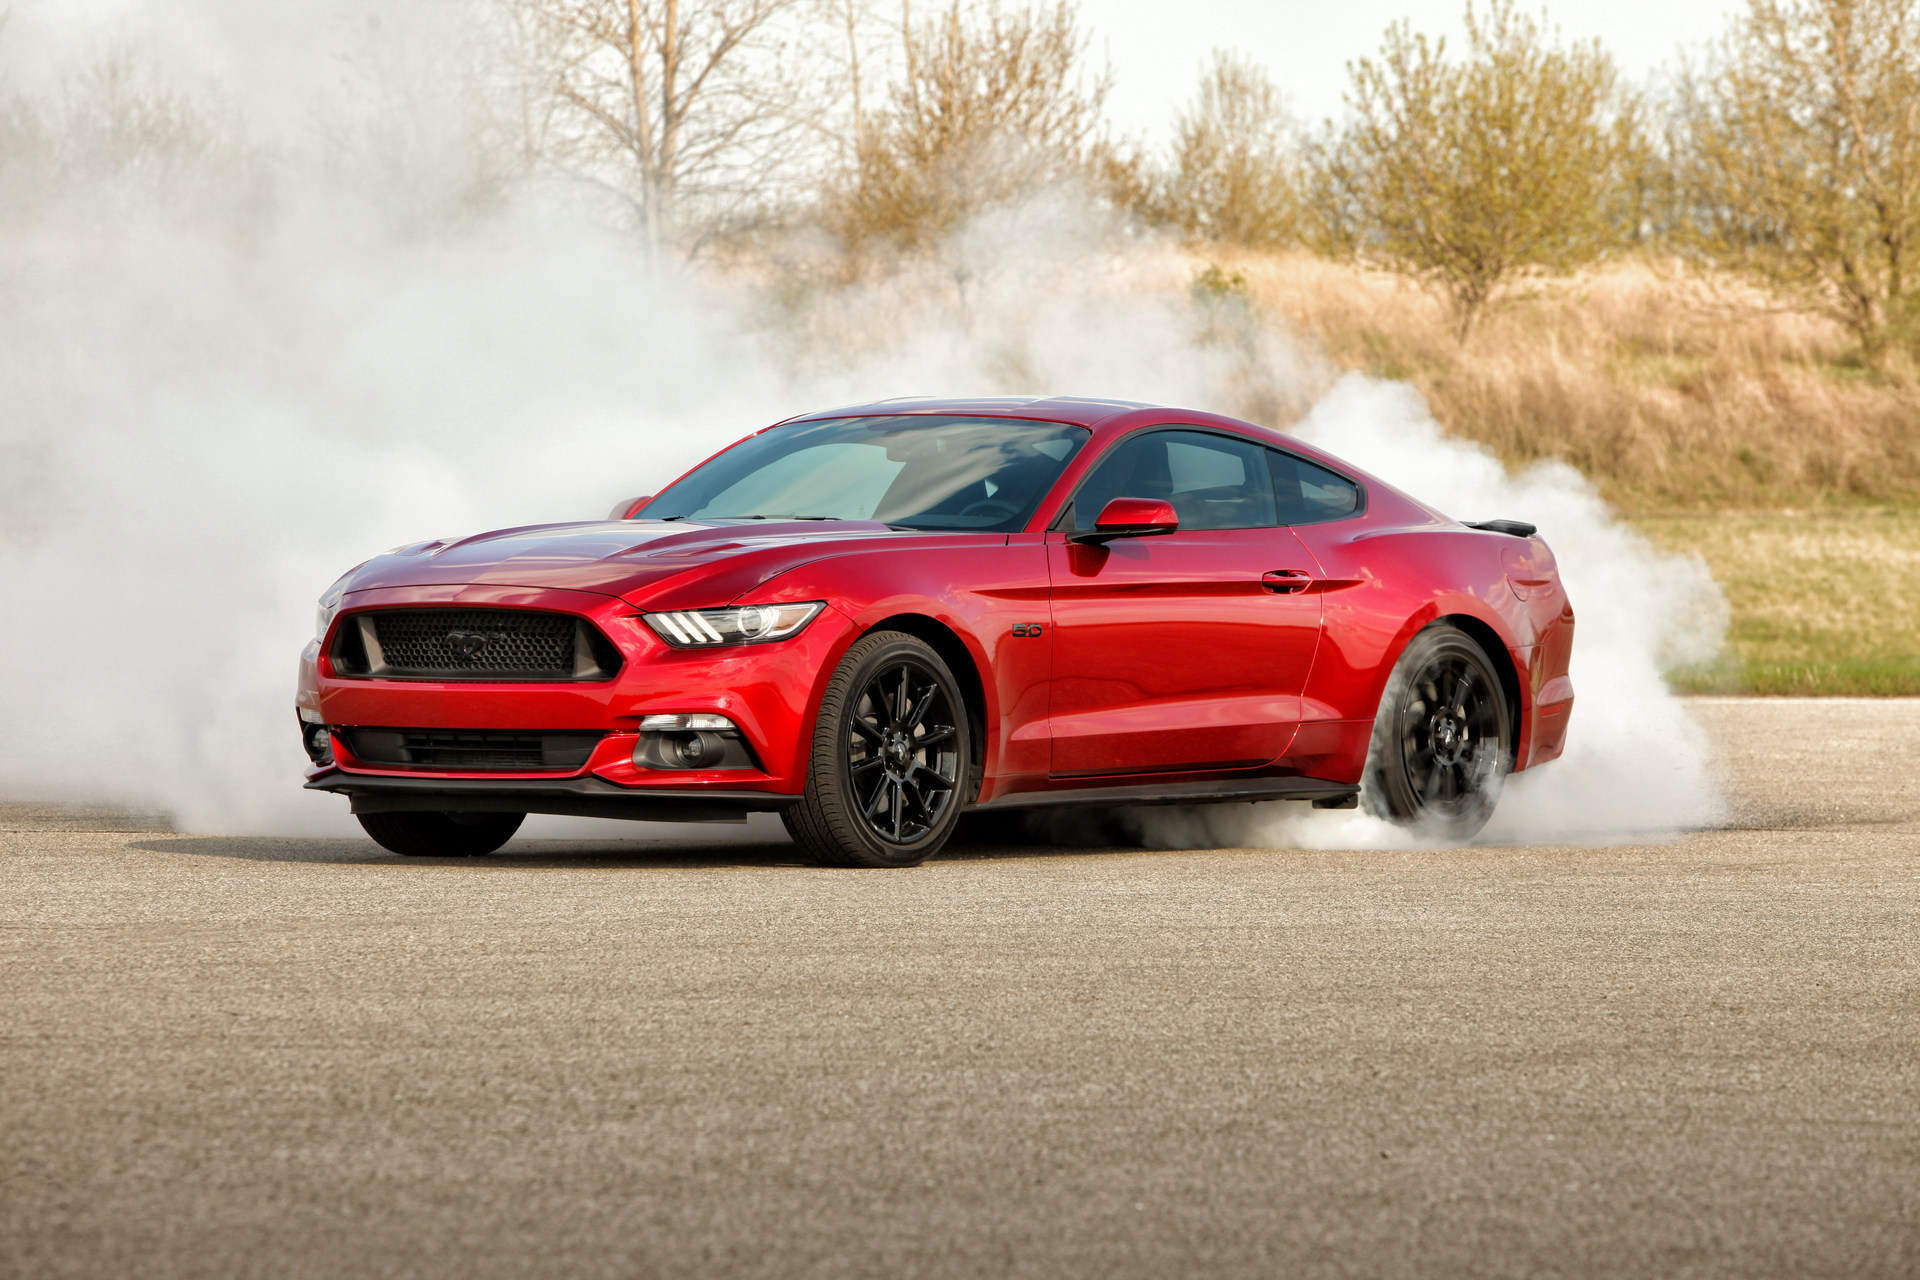 Where is the Ford Mustang Made?